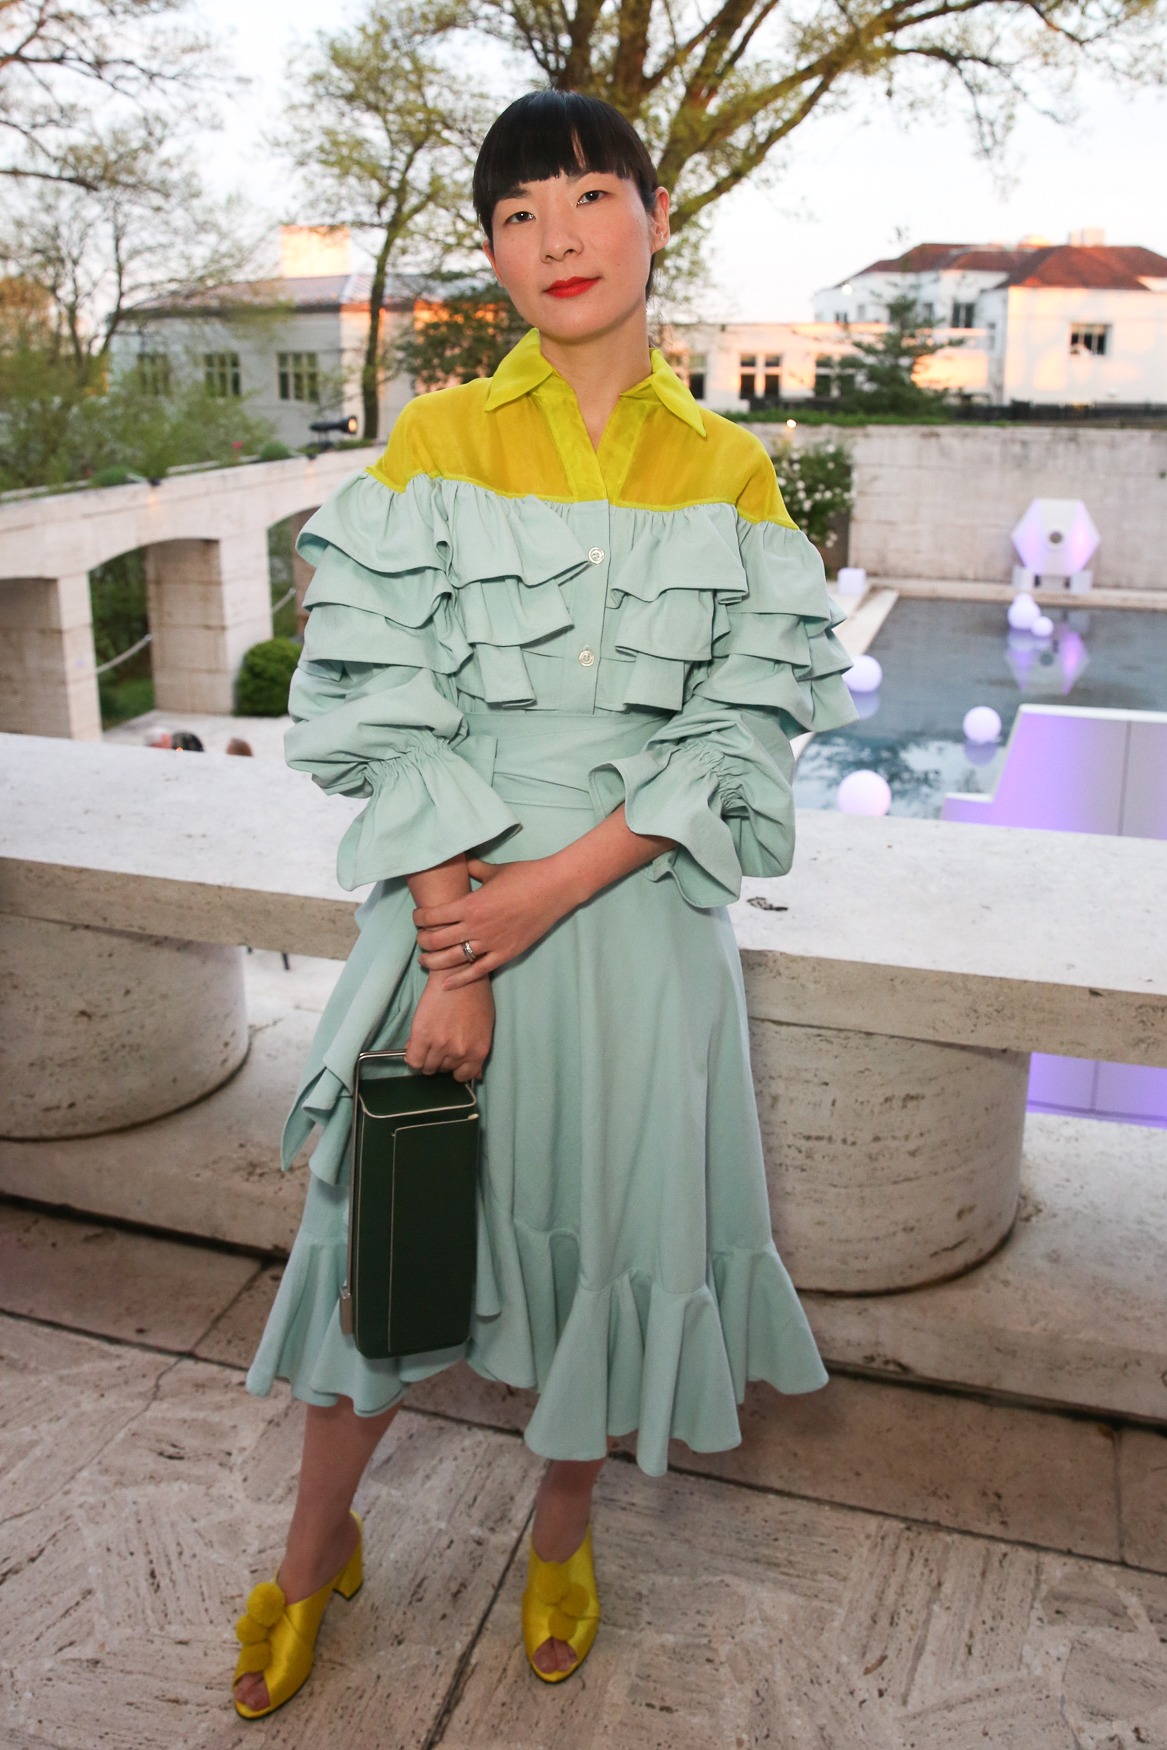 Monling Lee looked spot on and perfectly color blocked in this bright frock and coordinated shoes. (Image: Amanda Andrade-Rhoades/DC Refined)